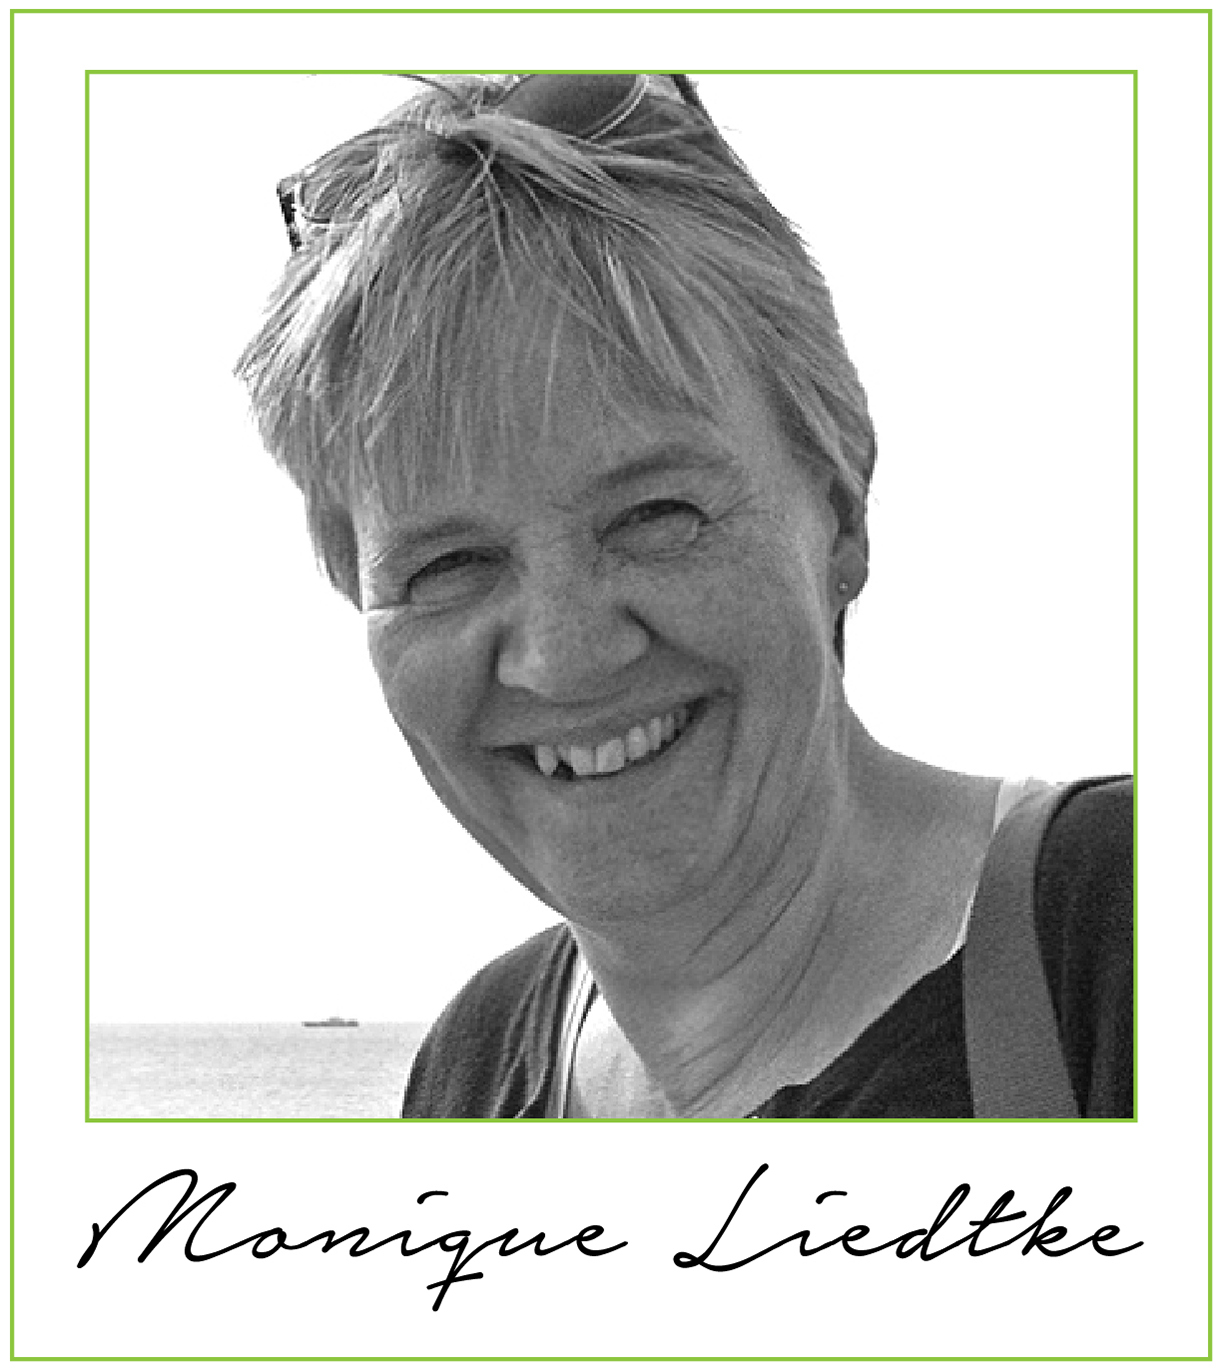 Monique Liedtke 17turtles Design Team Member